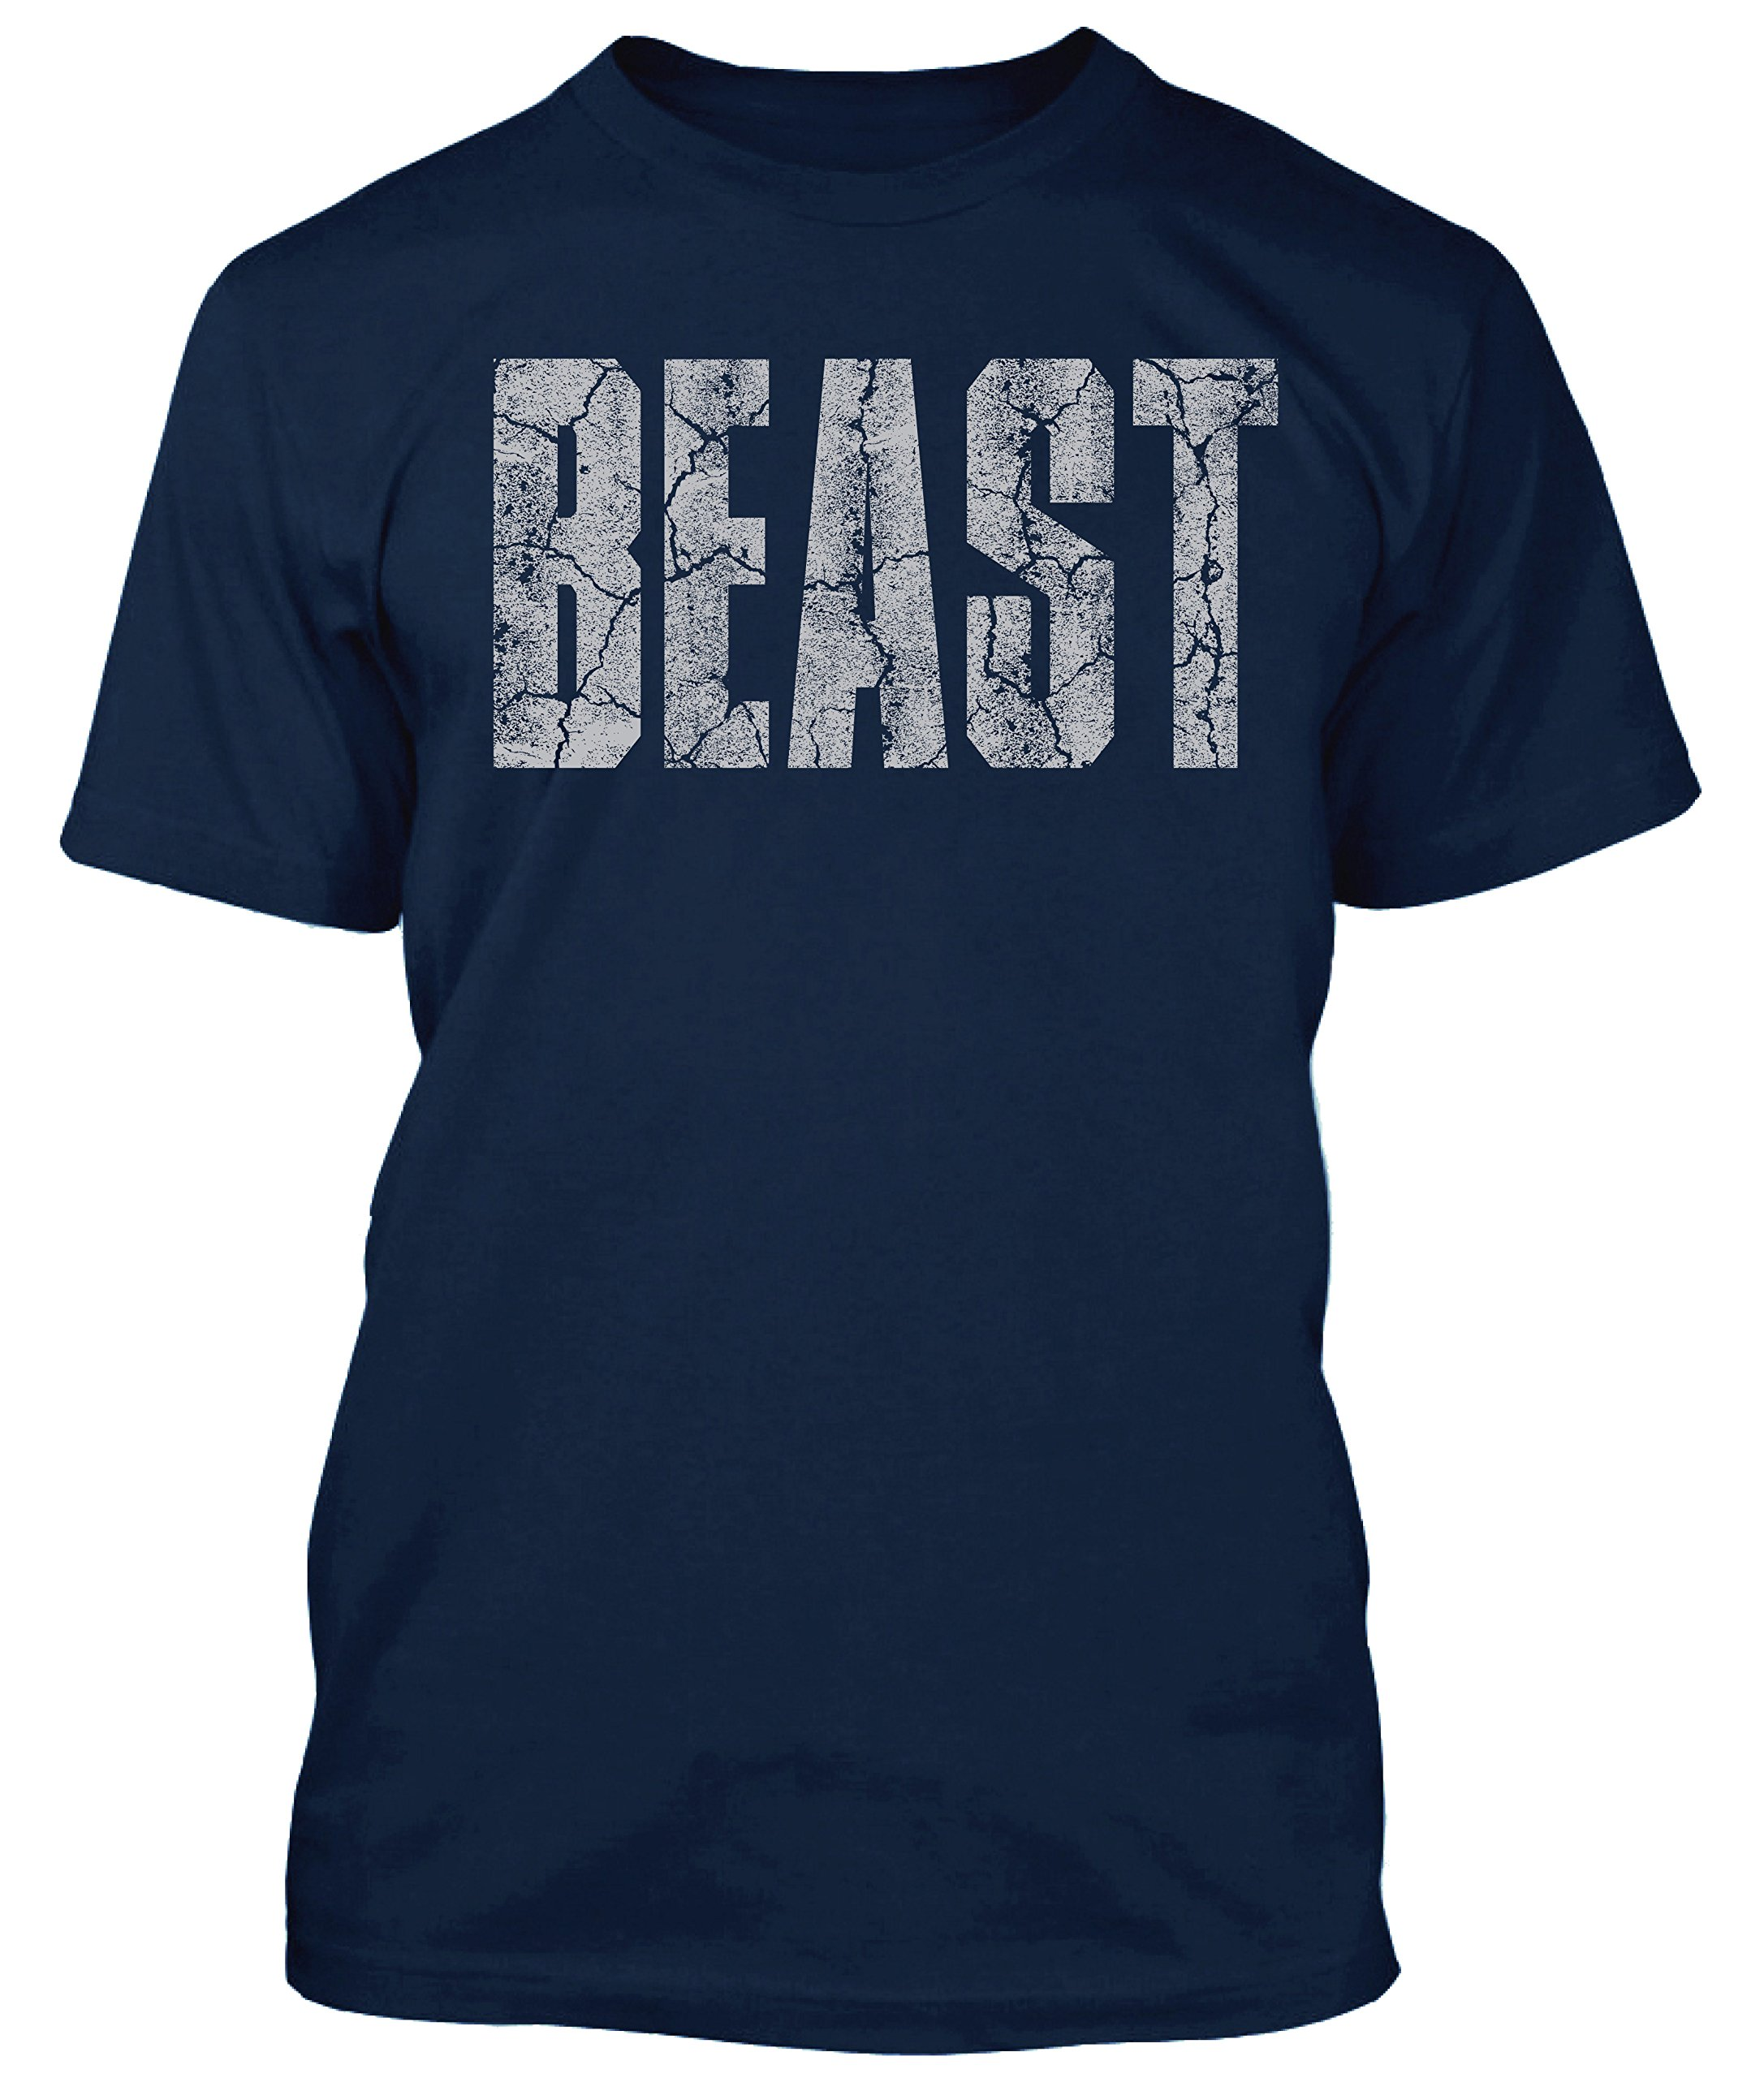 New Generation Apparel Beast Shirt Gym Workout Wear Weightlifting (S, Navy)